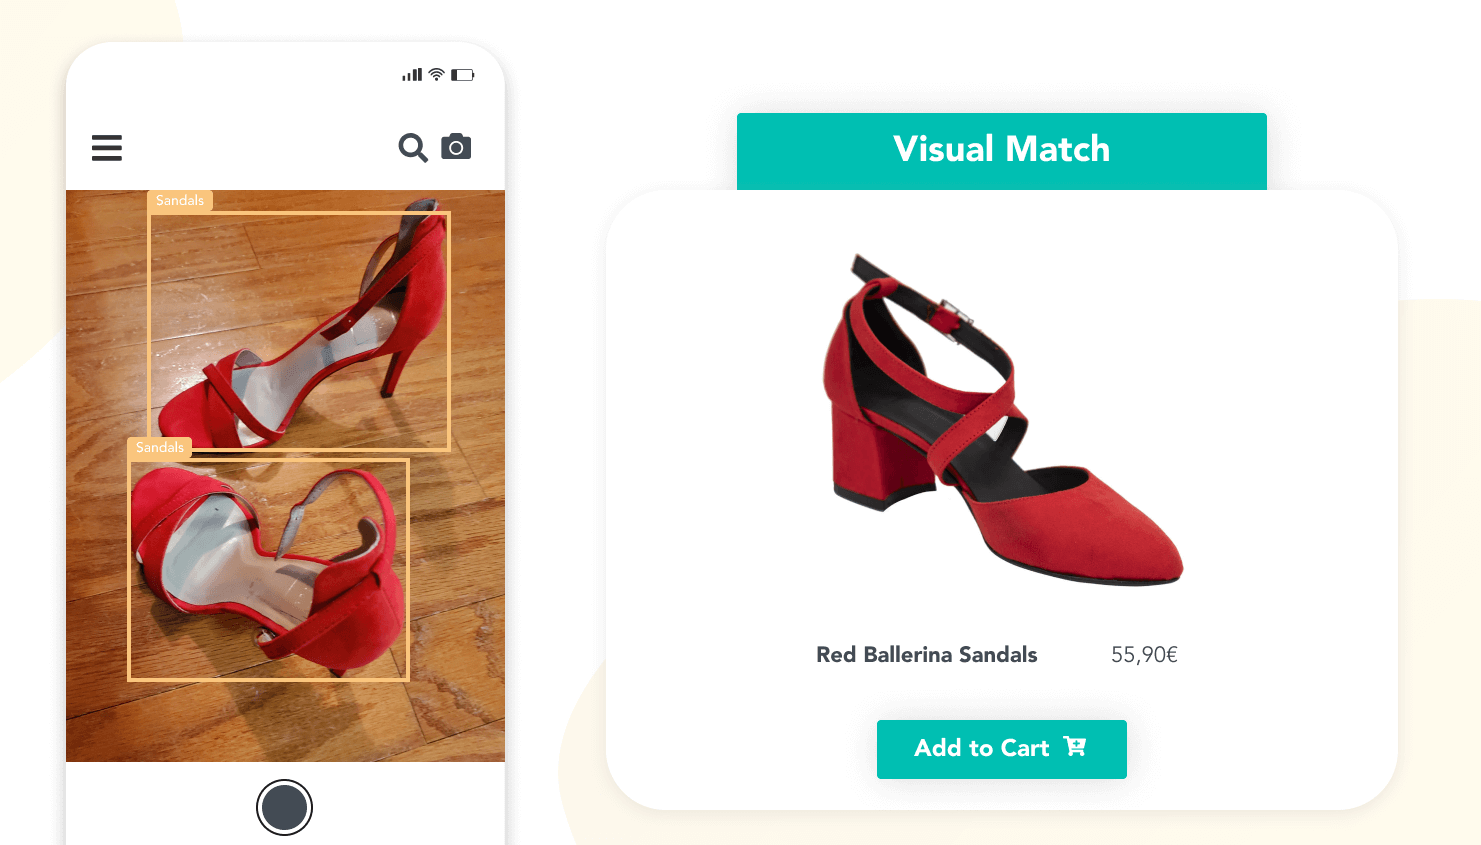 Image of a phone taking picture of red sandals and receiving the most visually similar sandals in store